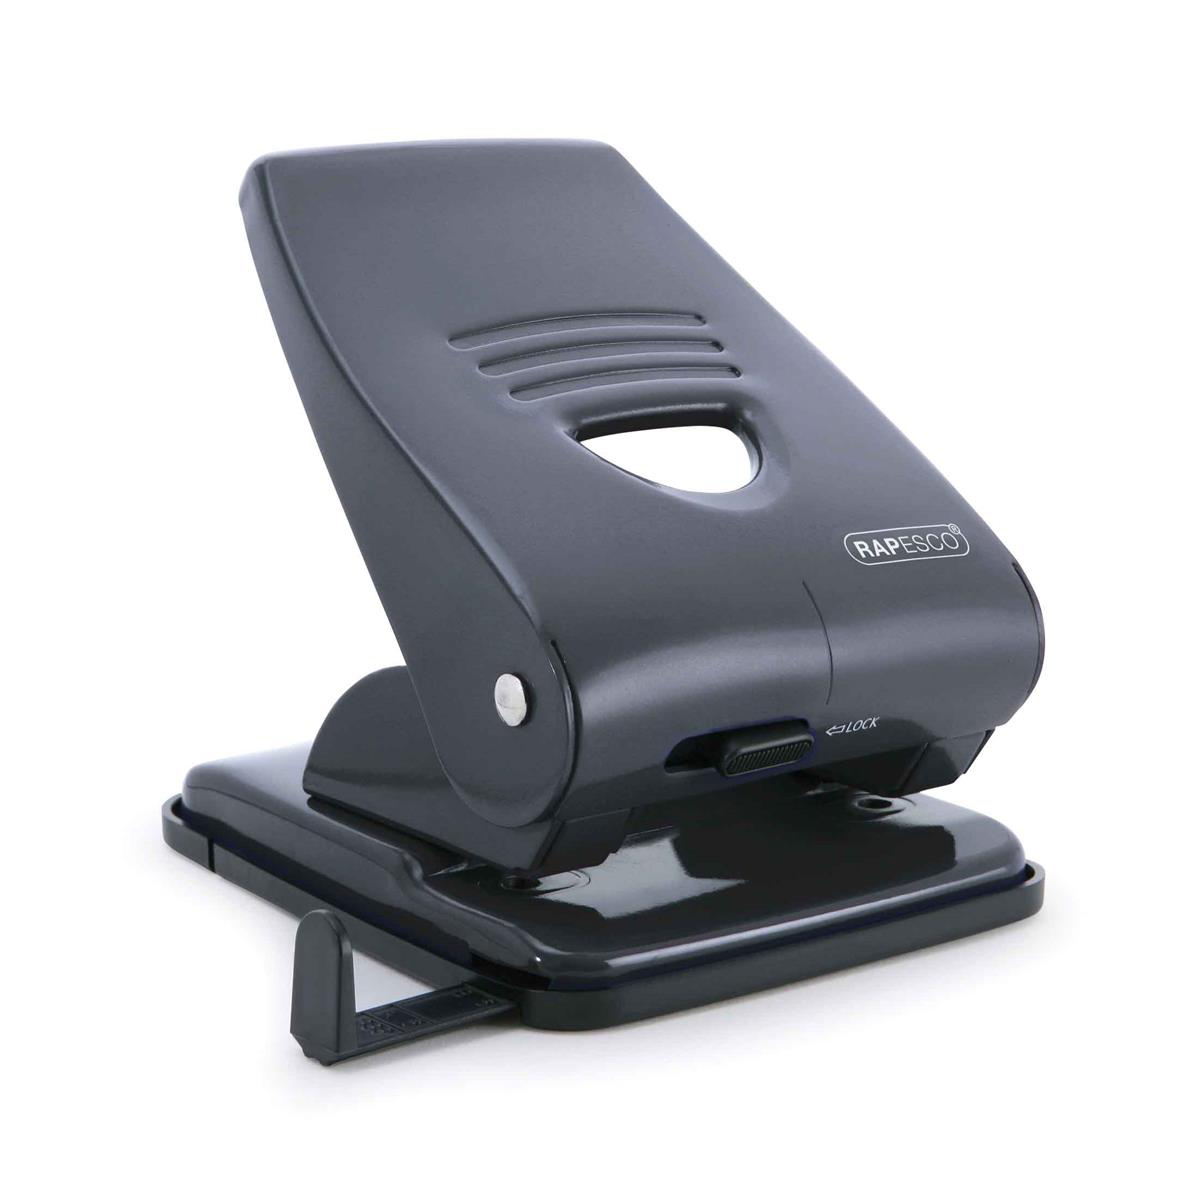 Hole Punches Rapesco 835M Punch 2-Hole Metal Heavy-duty with Lock-down Handle Capacity 40x 80gsm Black Ref PF800AB1